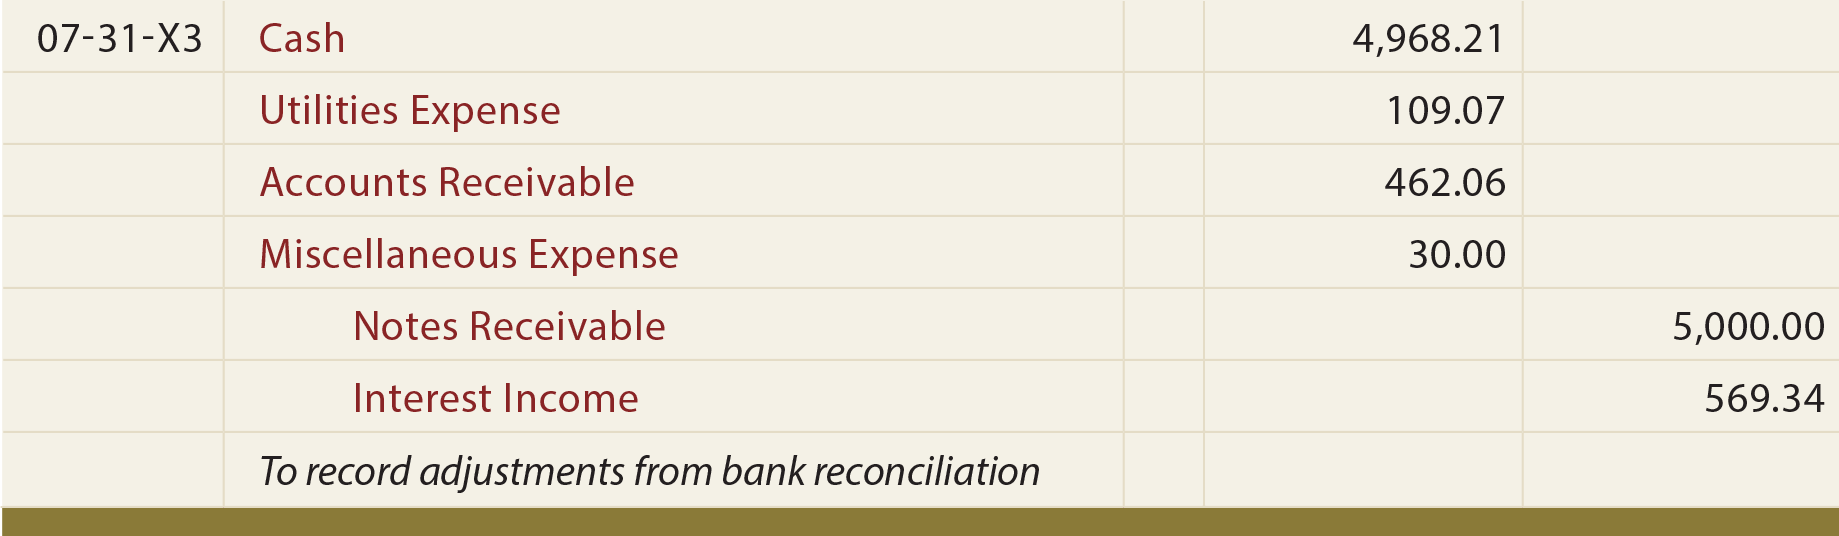 Bank Reconciliation Journal Entries